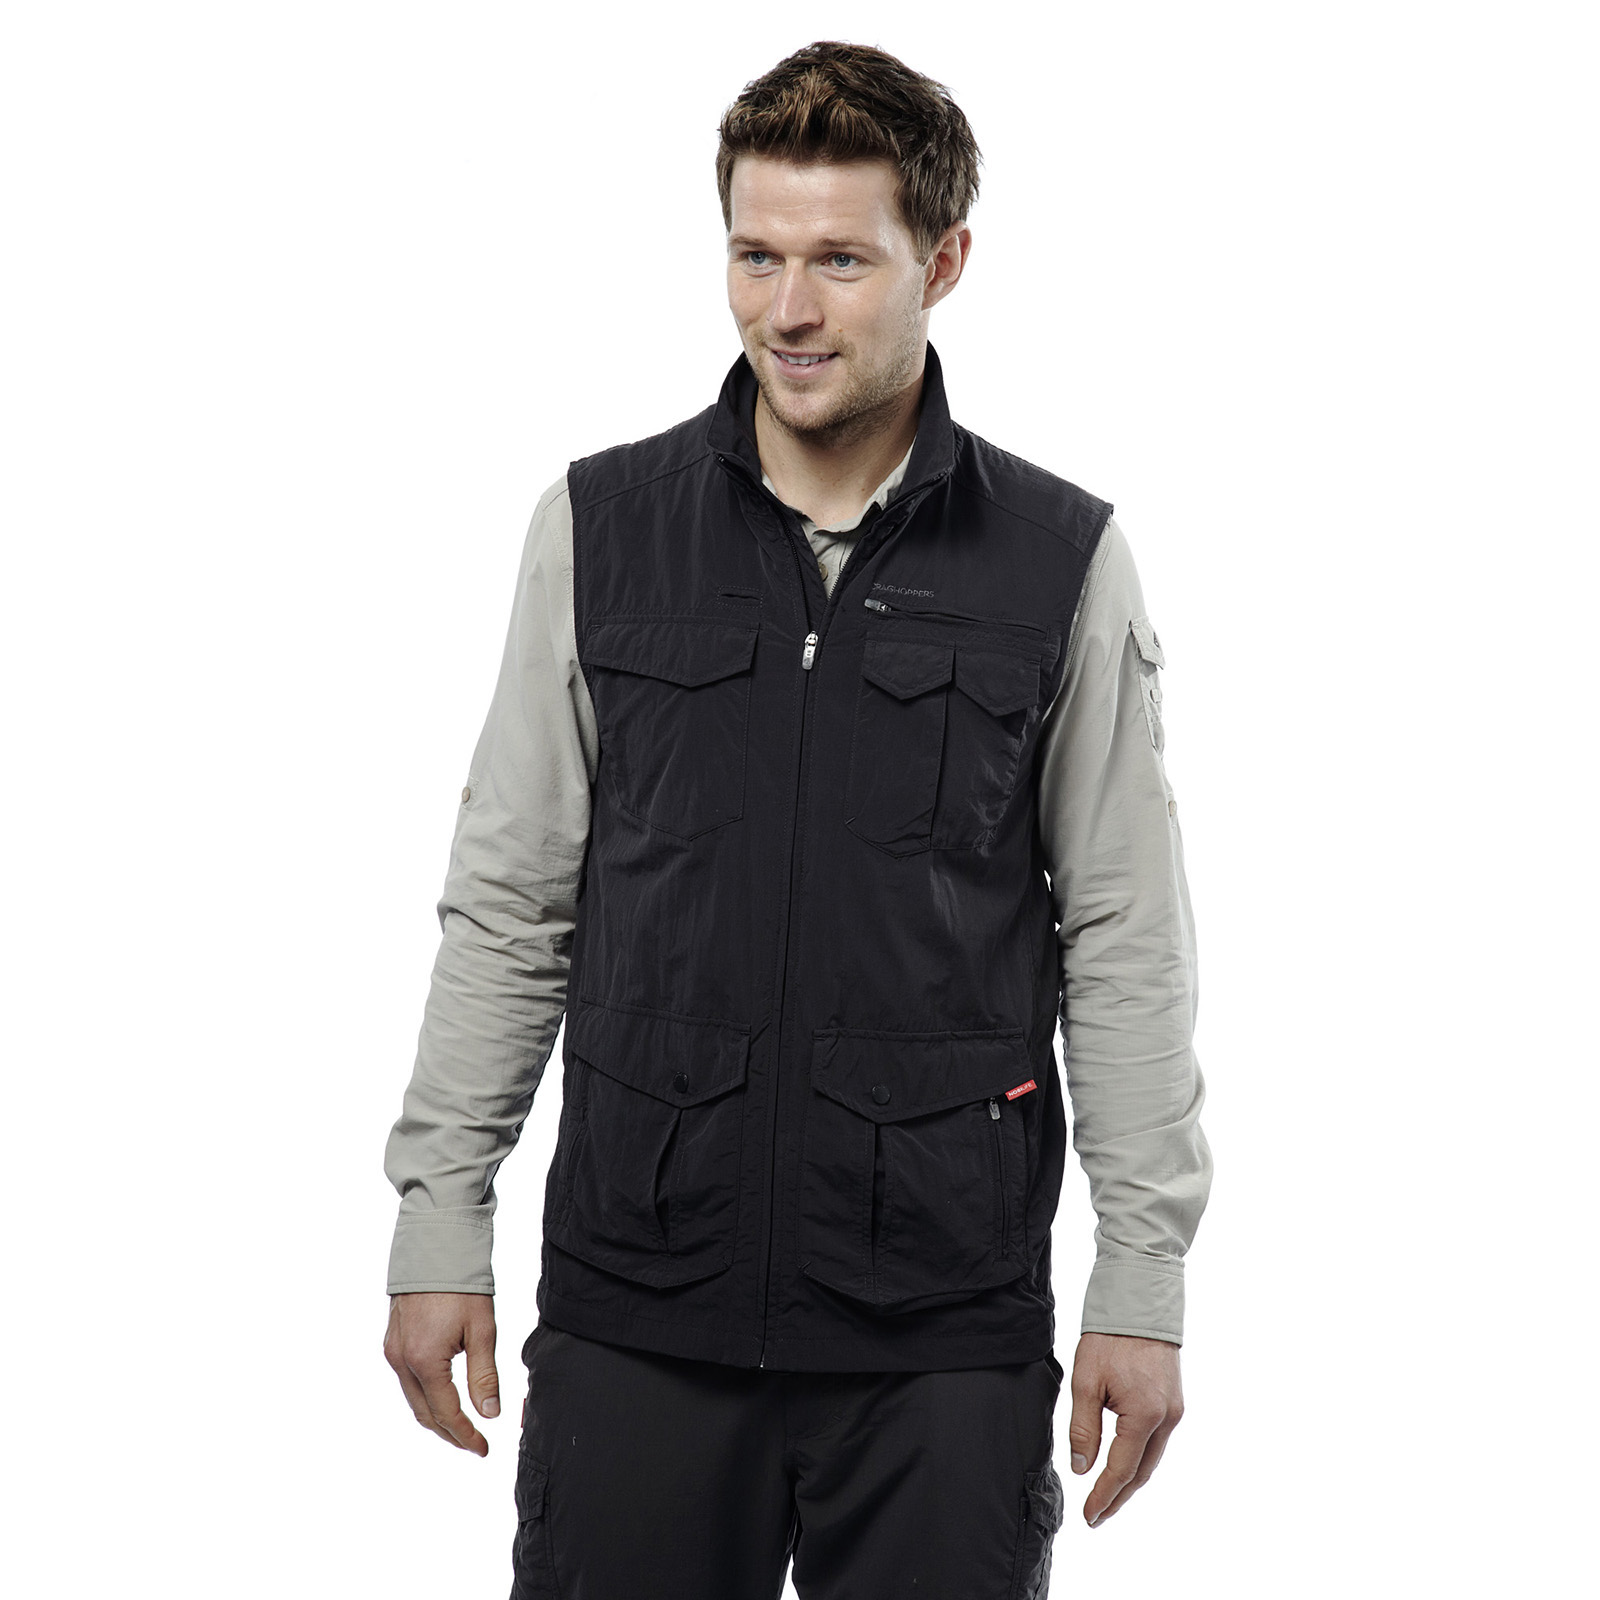 Craghoppers Mens NosiLife Adventure Gilet RRP £90